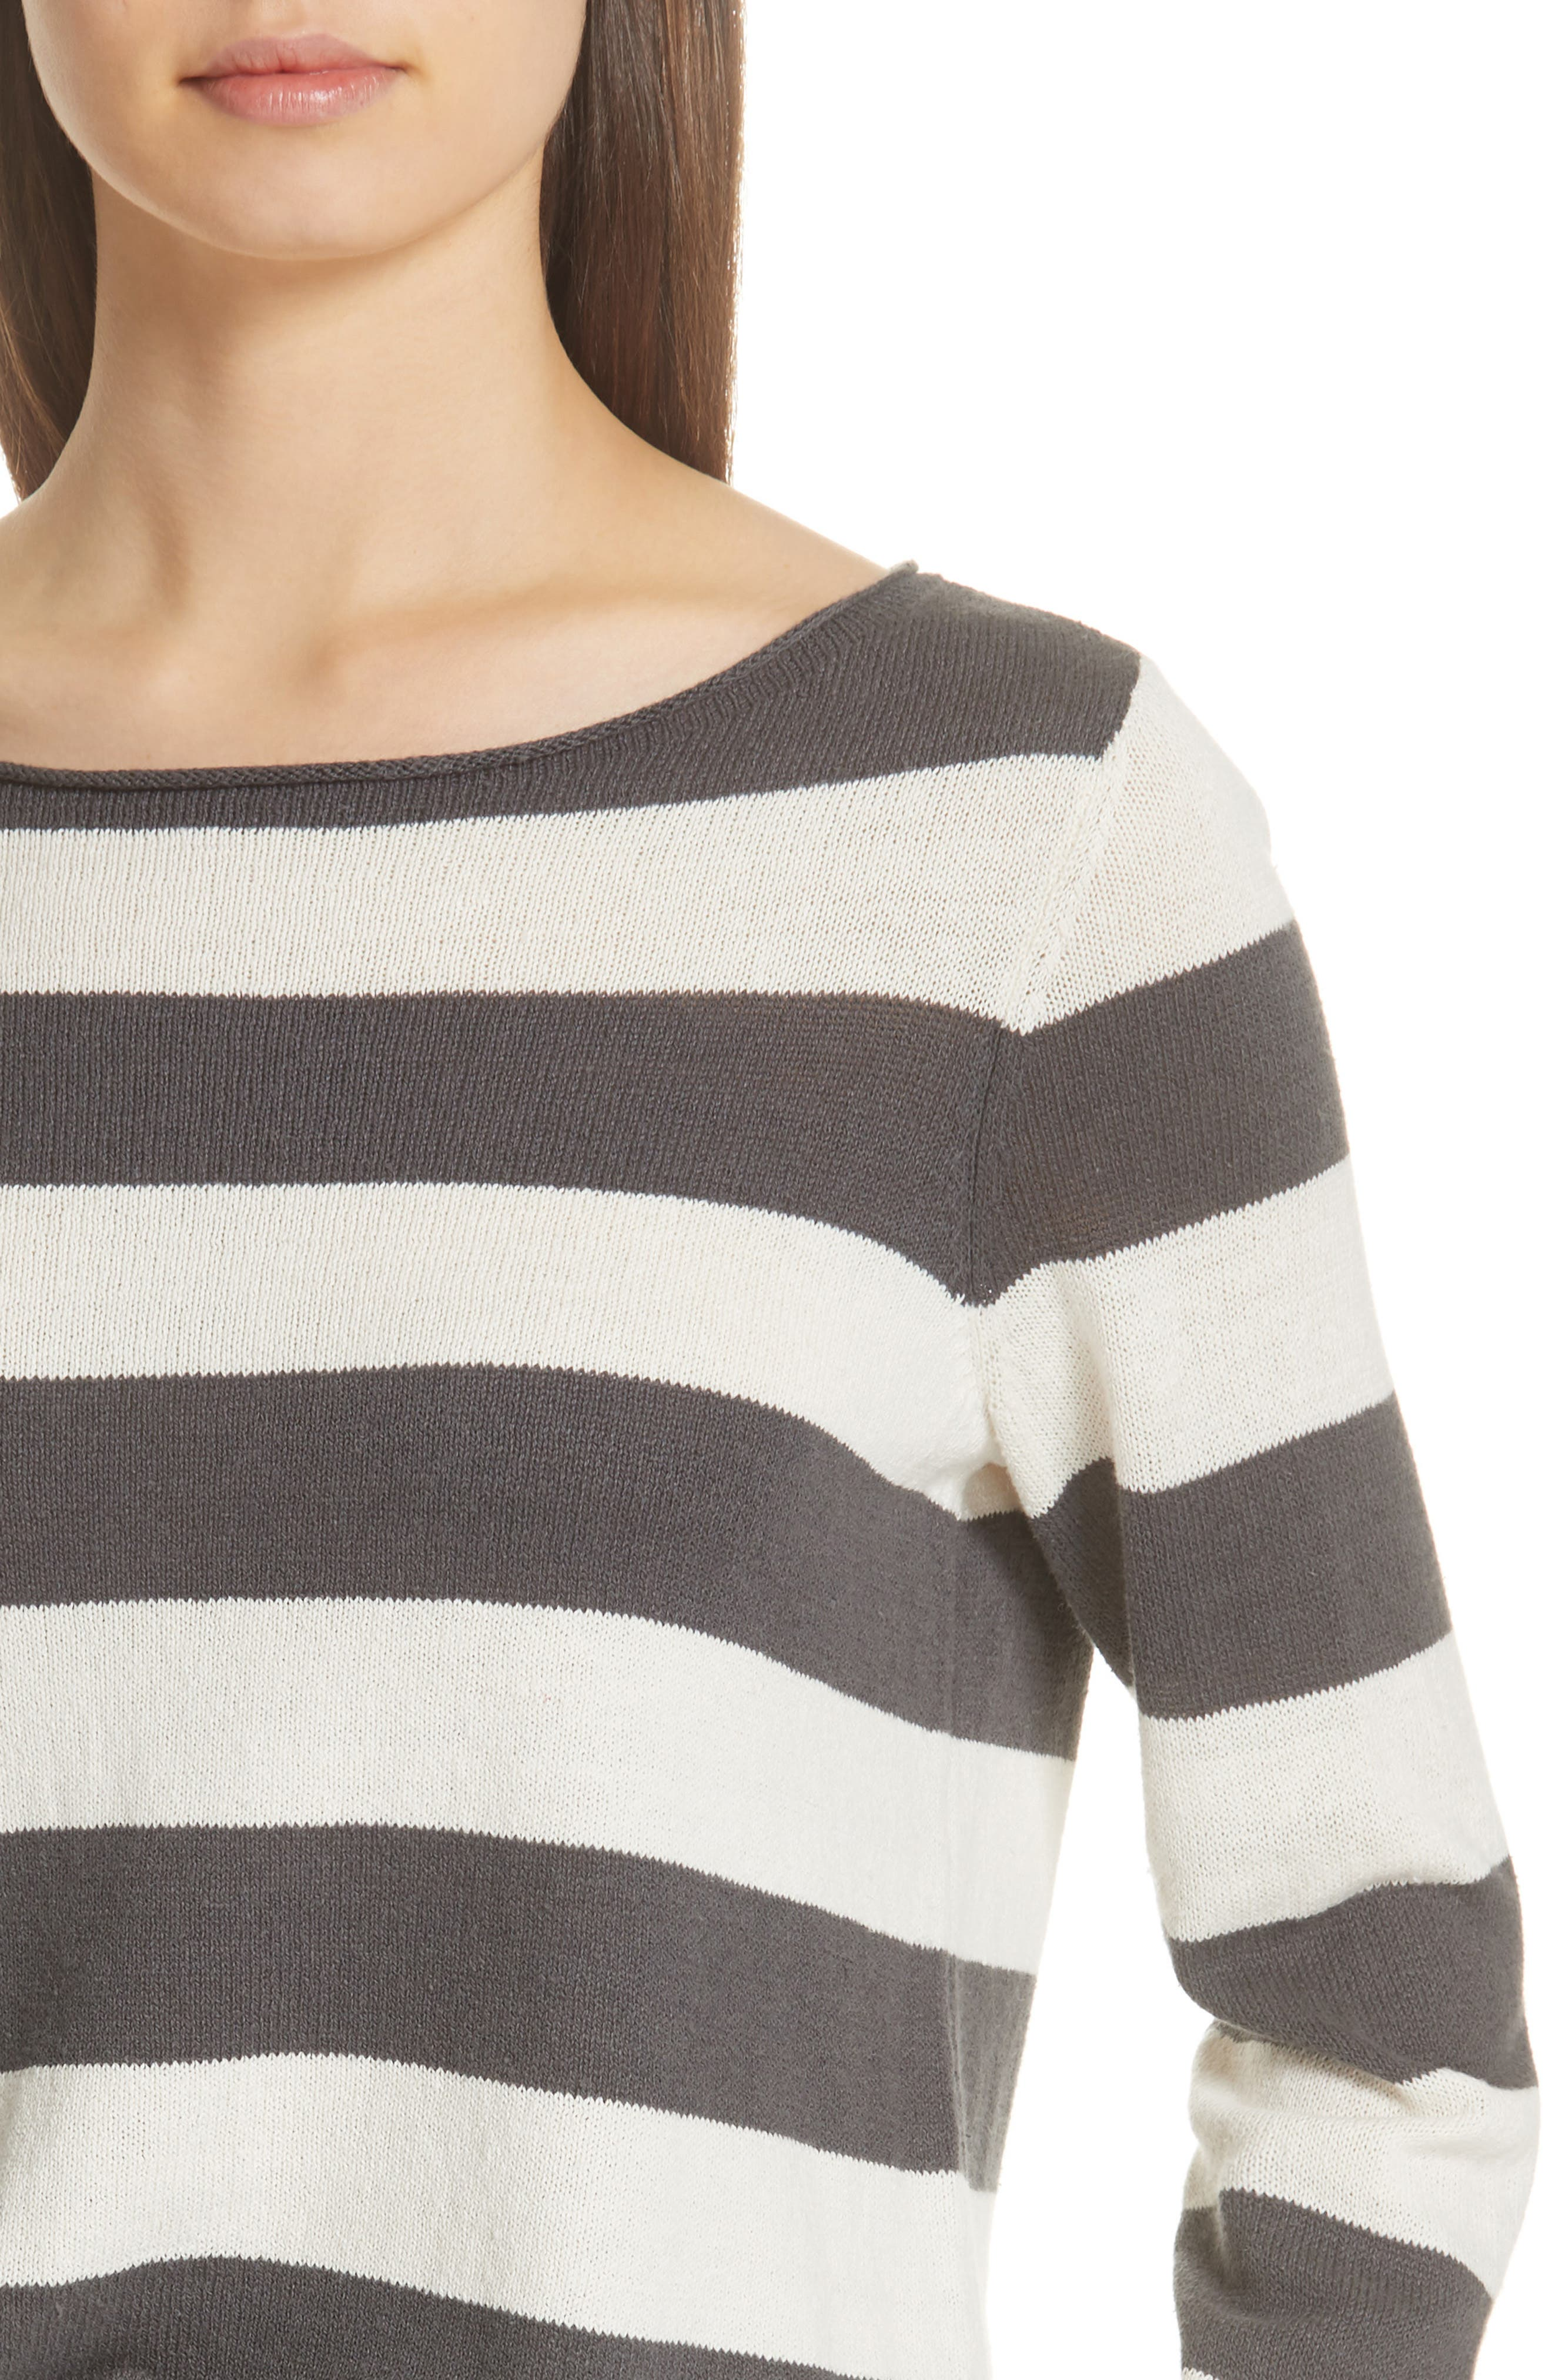 Stripe Cotton & Hemp Sweater,                             Alternate thumbnail 4, color,                             166